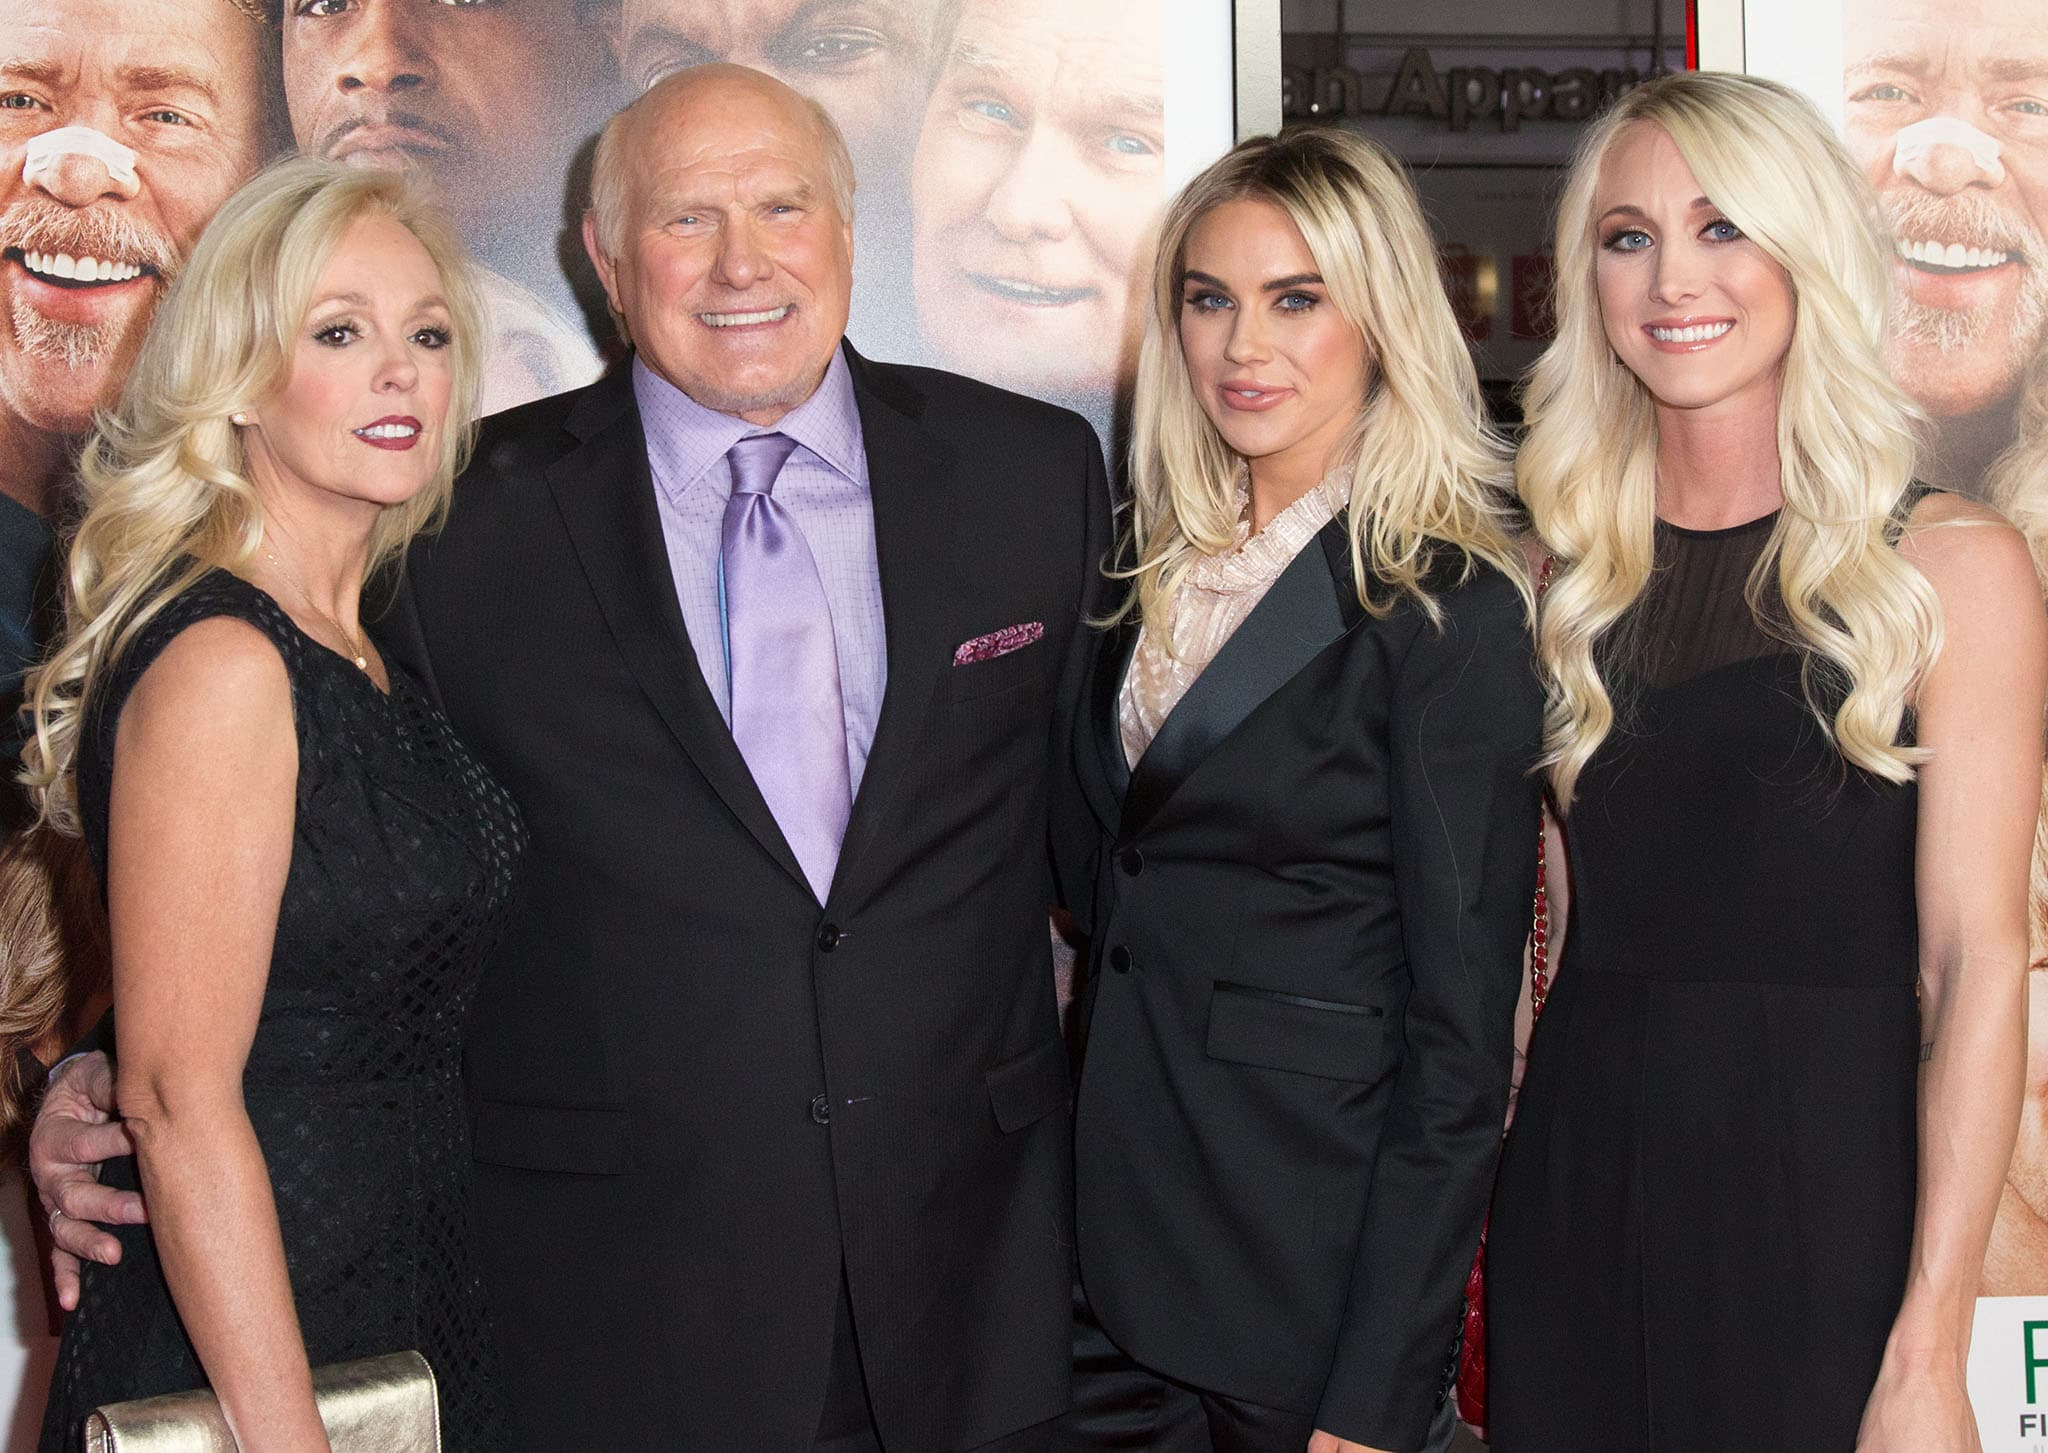 Tammy Bradshaw and Terry Bradshaw with his daughters, Rachel and Erin, with Charla Hopkins at the Father Figures premiere in December 2017